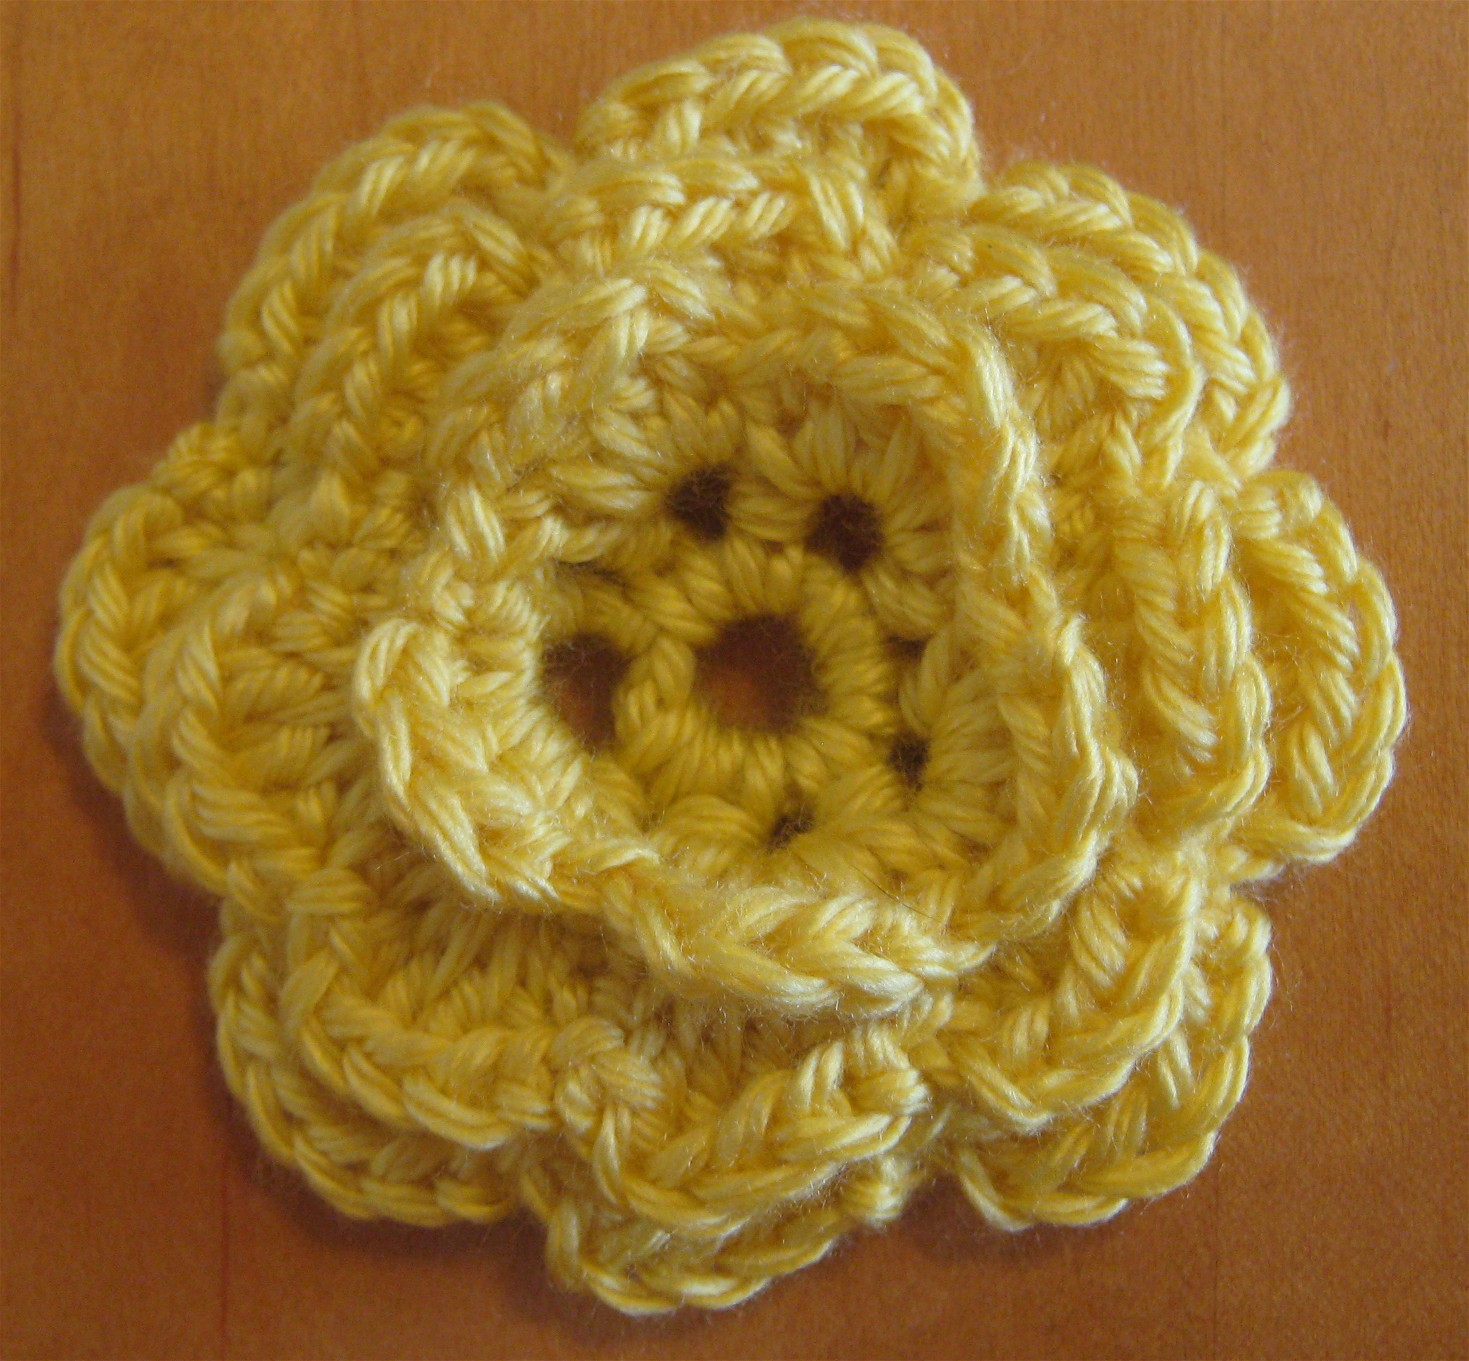 Crocheting Jobs : GREAT JOB!!! You did it! Its adorable and all done!!!